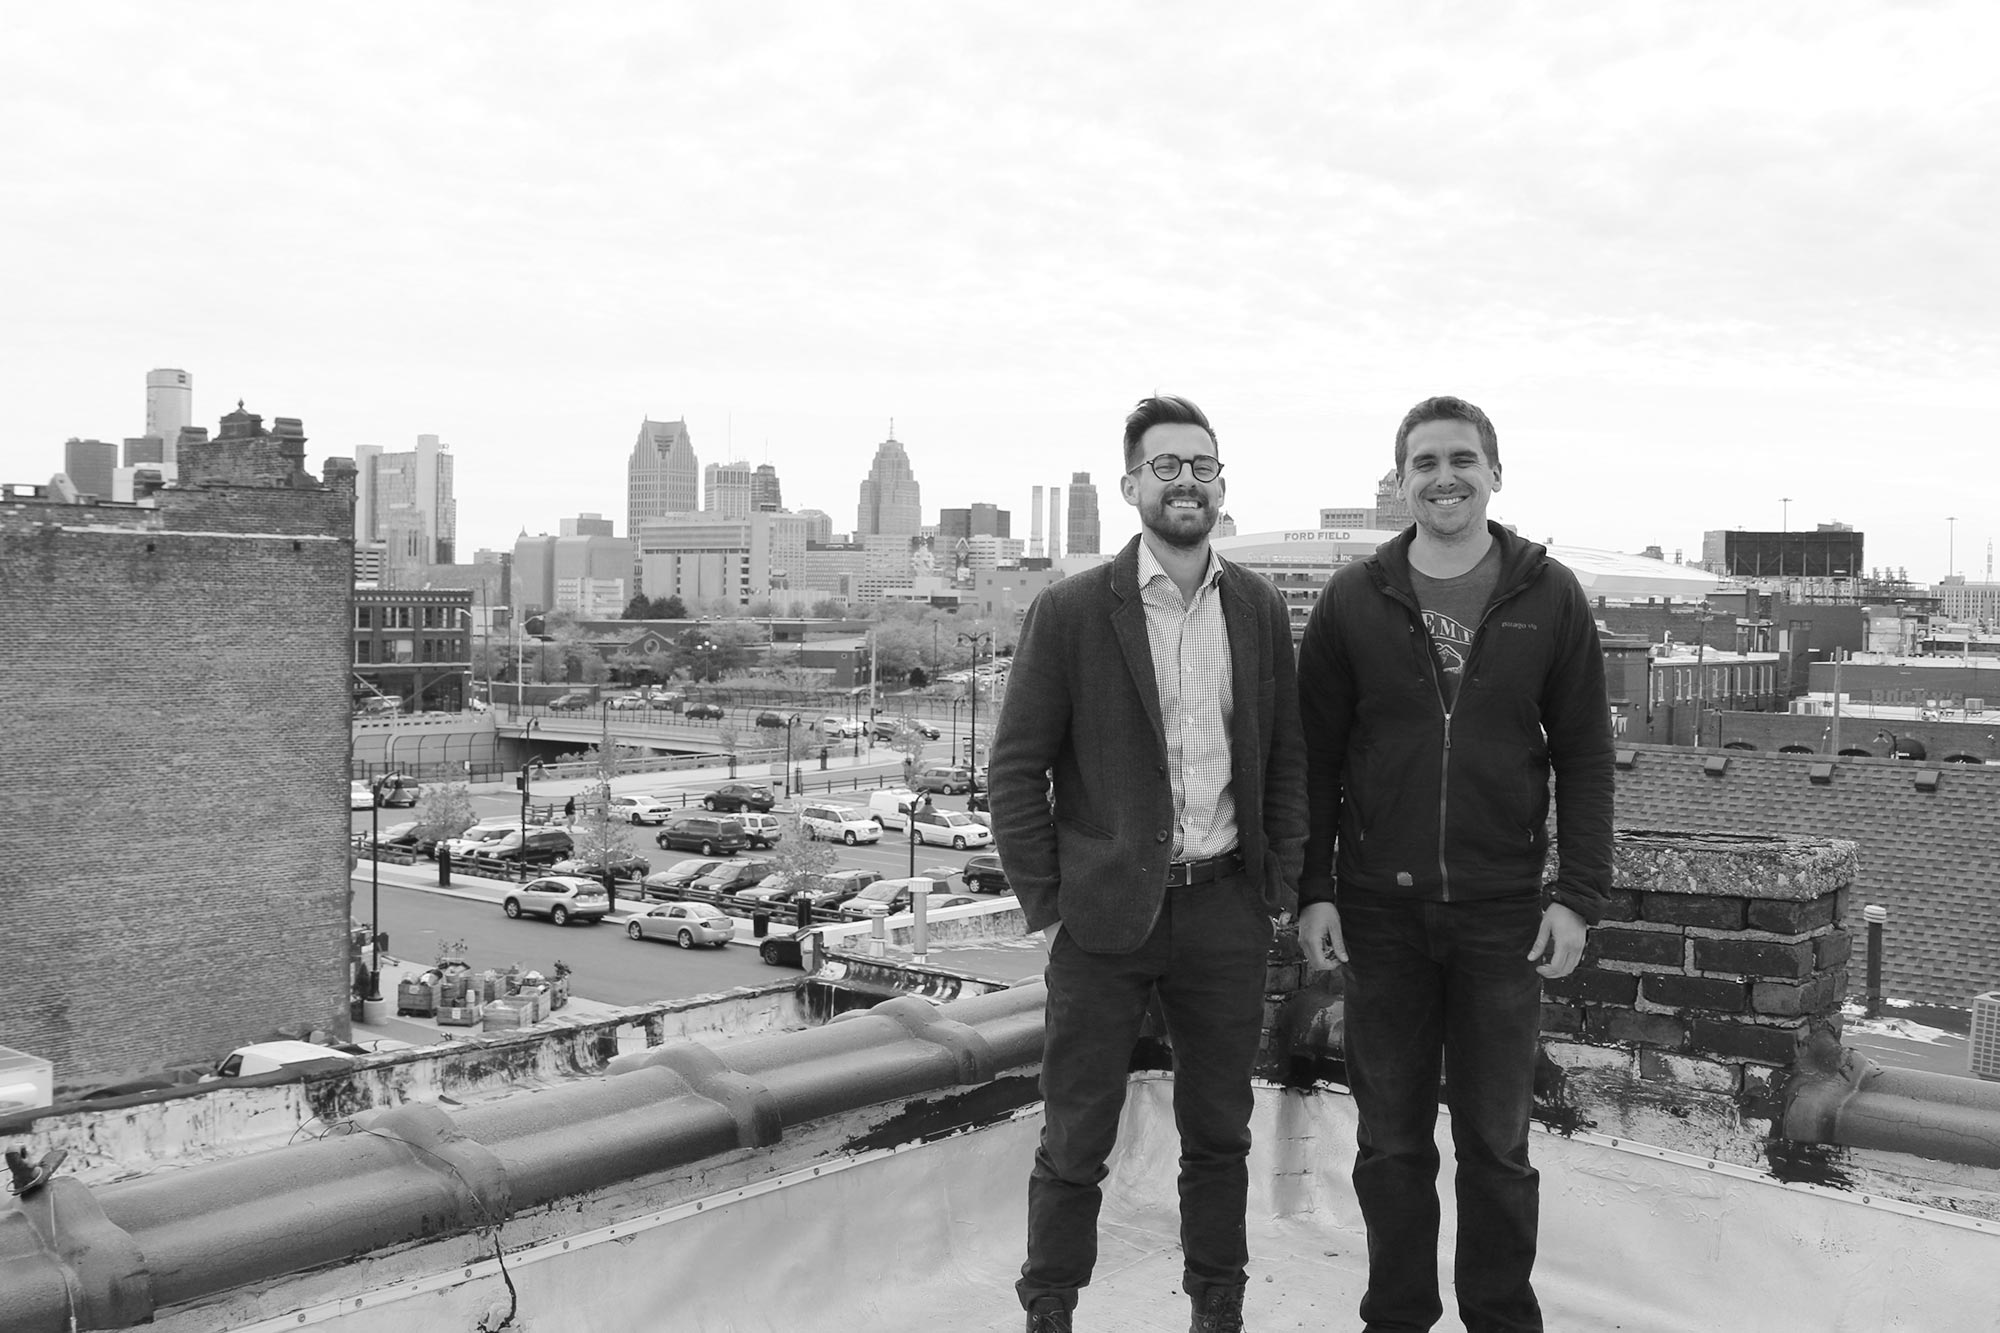 Dayne Bartscht & Paul Hoskin on the roof of Eastern Market Brewing Company, overlooking the market